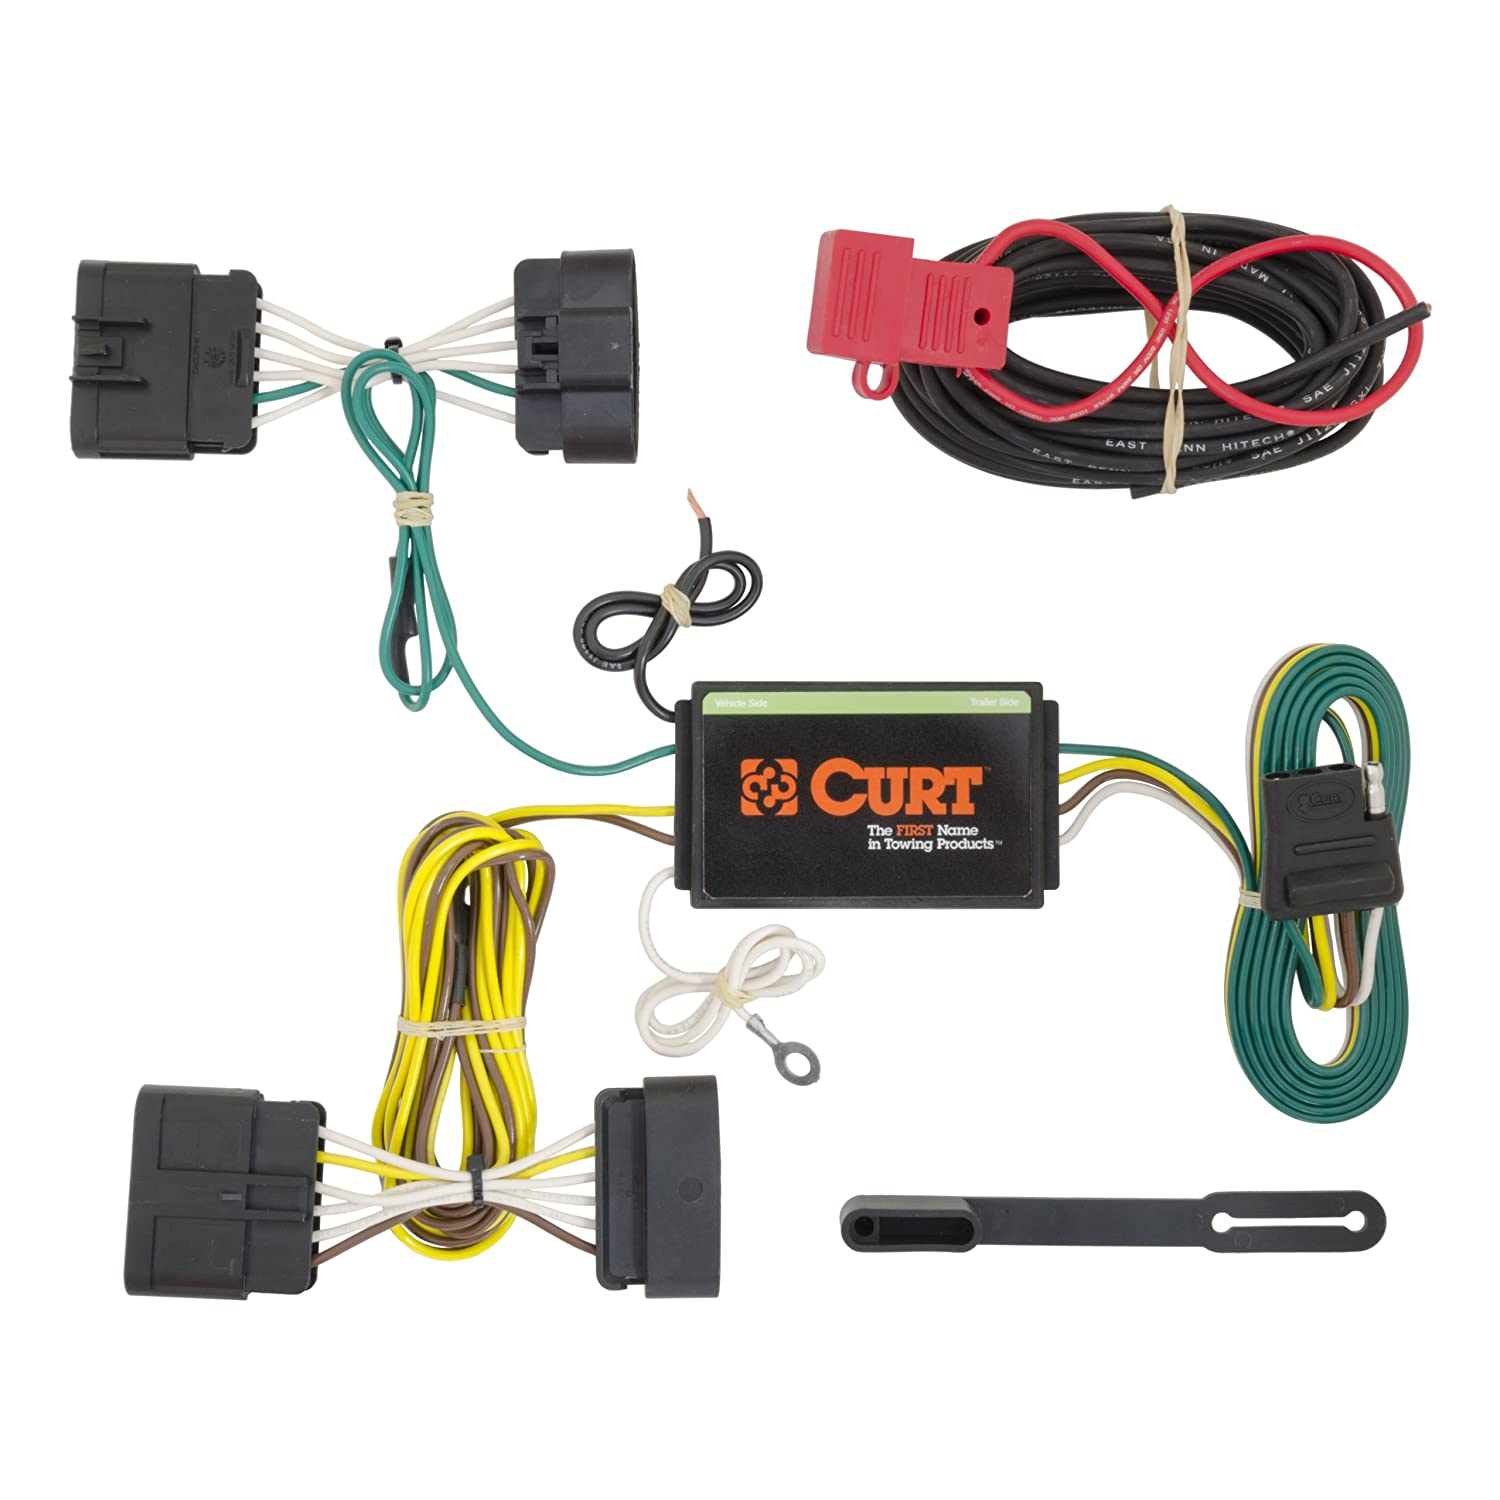 amazon com curt 56198 custom wiring harness automotive rh amazon com curt trailer wiring harness kit 55384 curt trailer wiring harness kit 55384